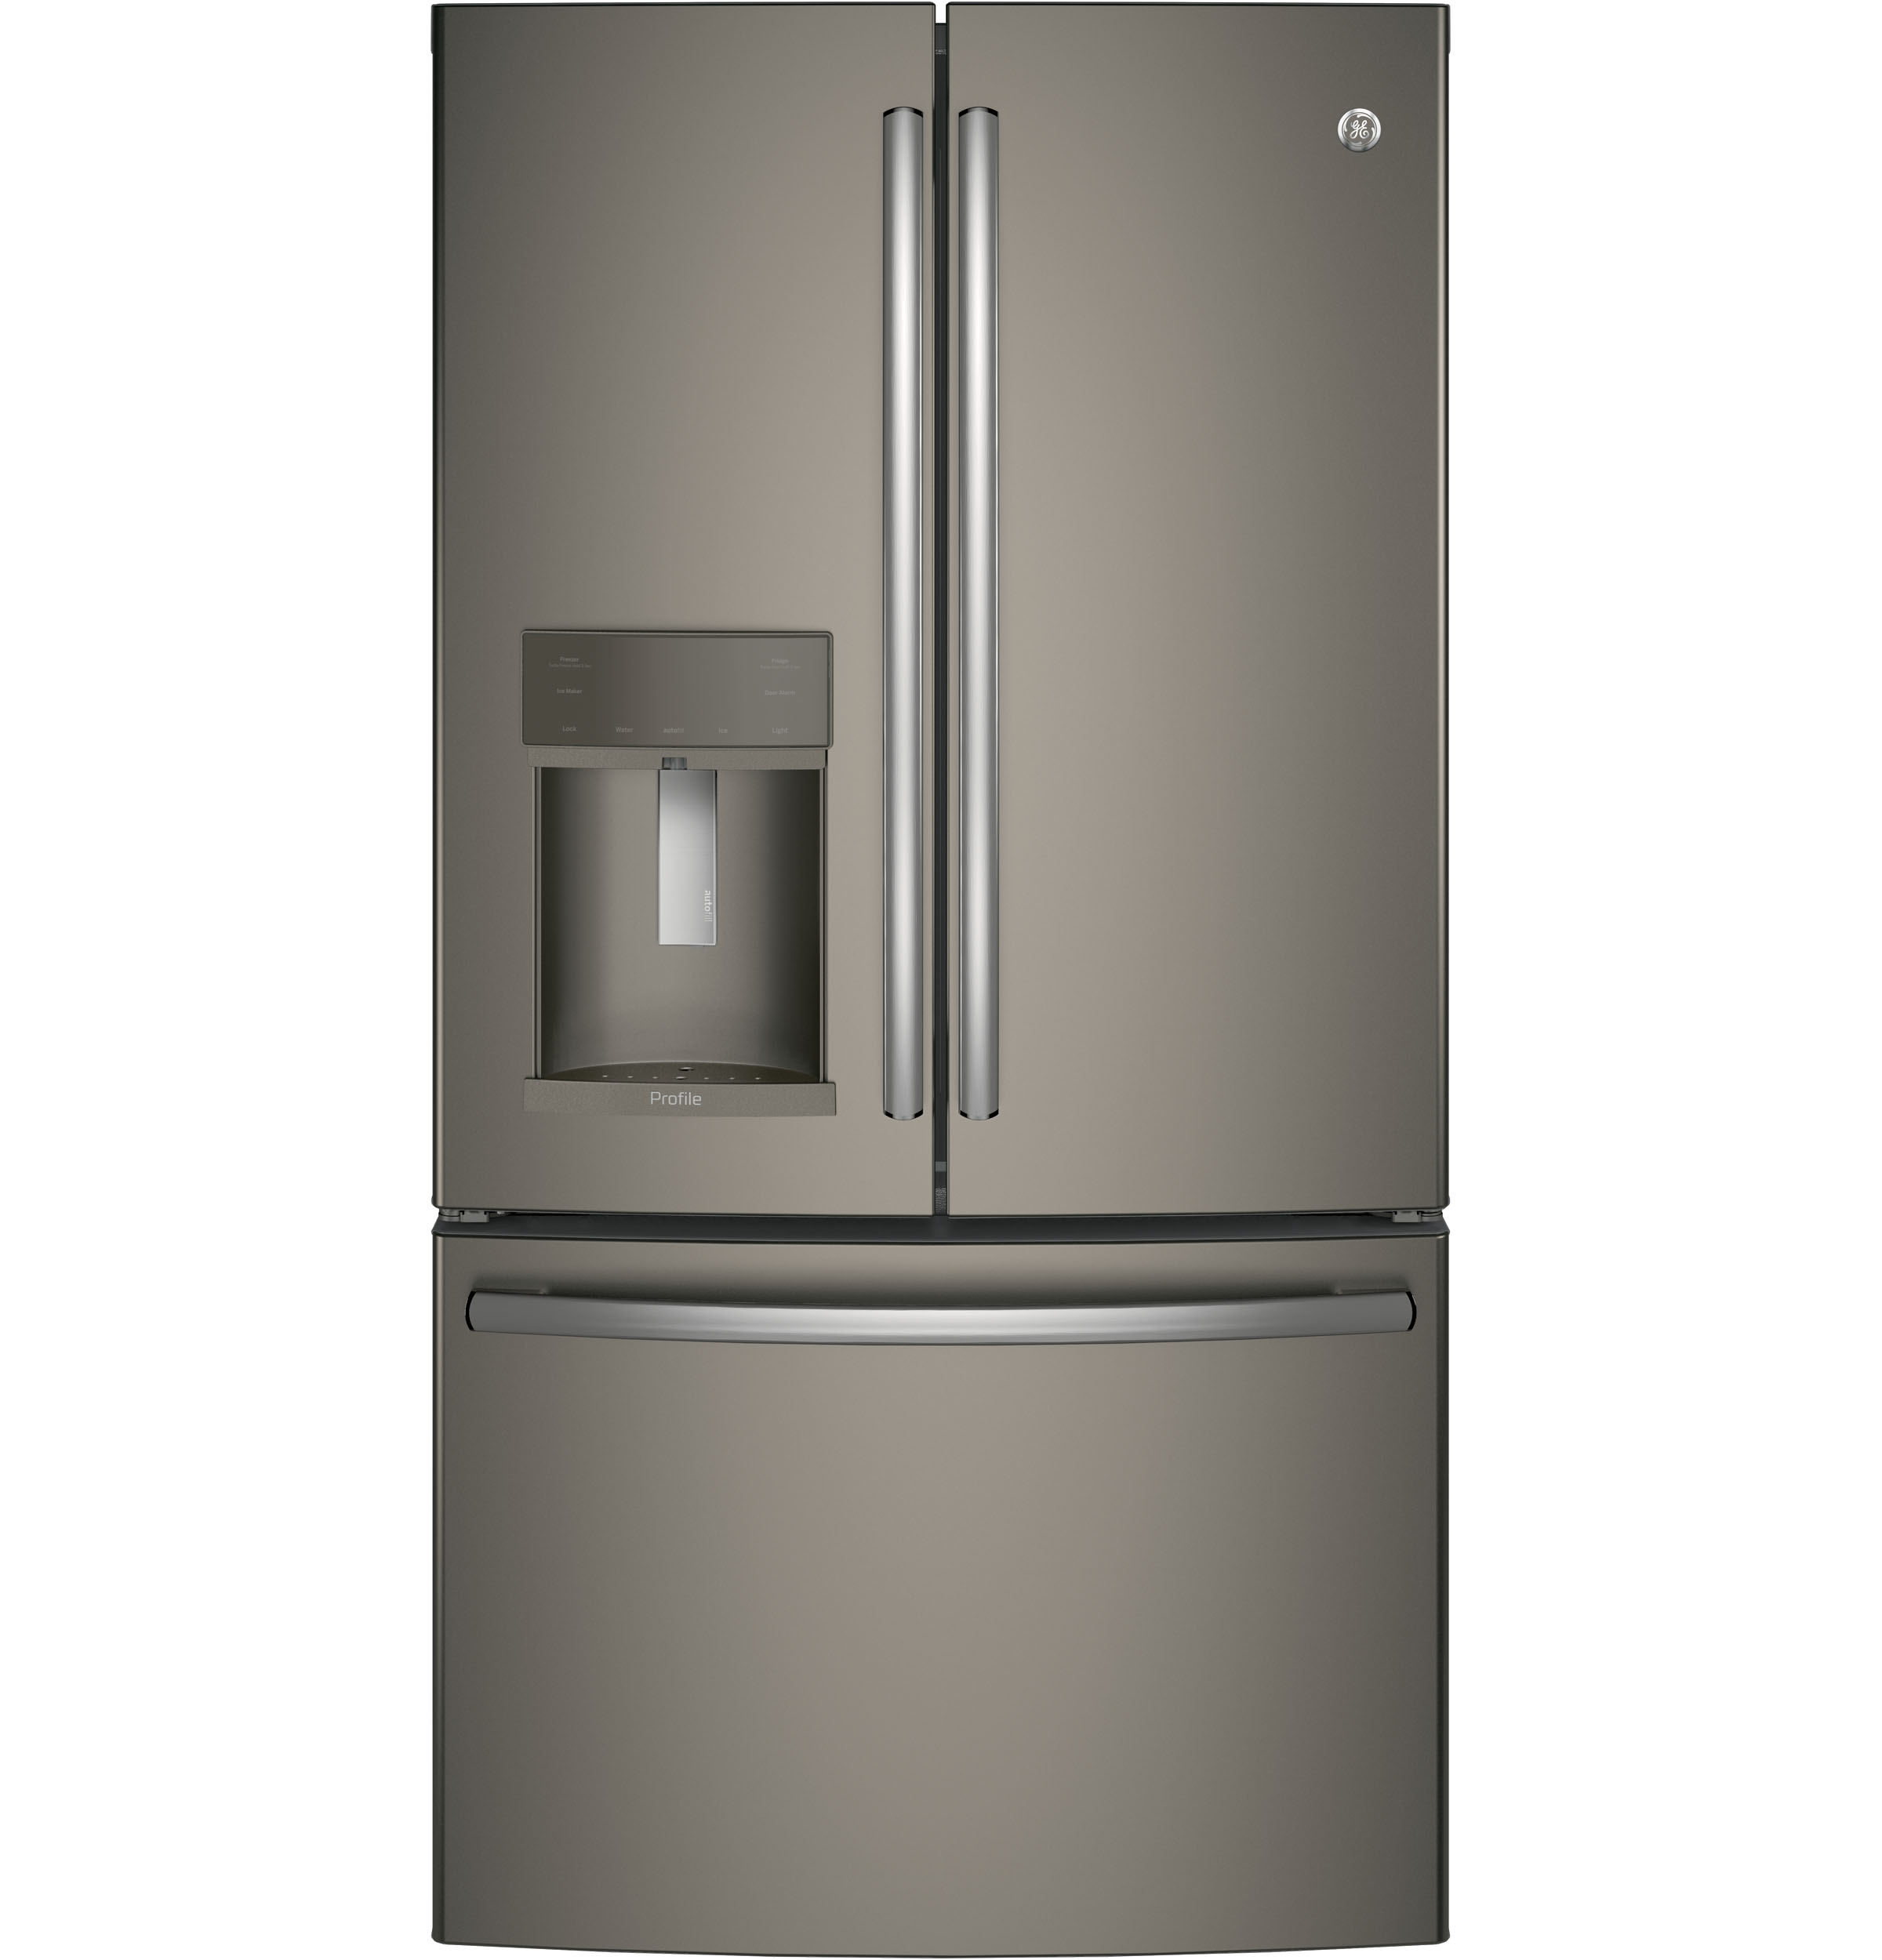 GE Profile™ Series ENERGY STAR® 27.8 Cu. Ft. French-Door ... on